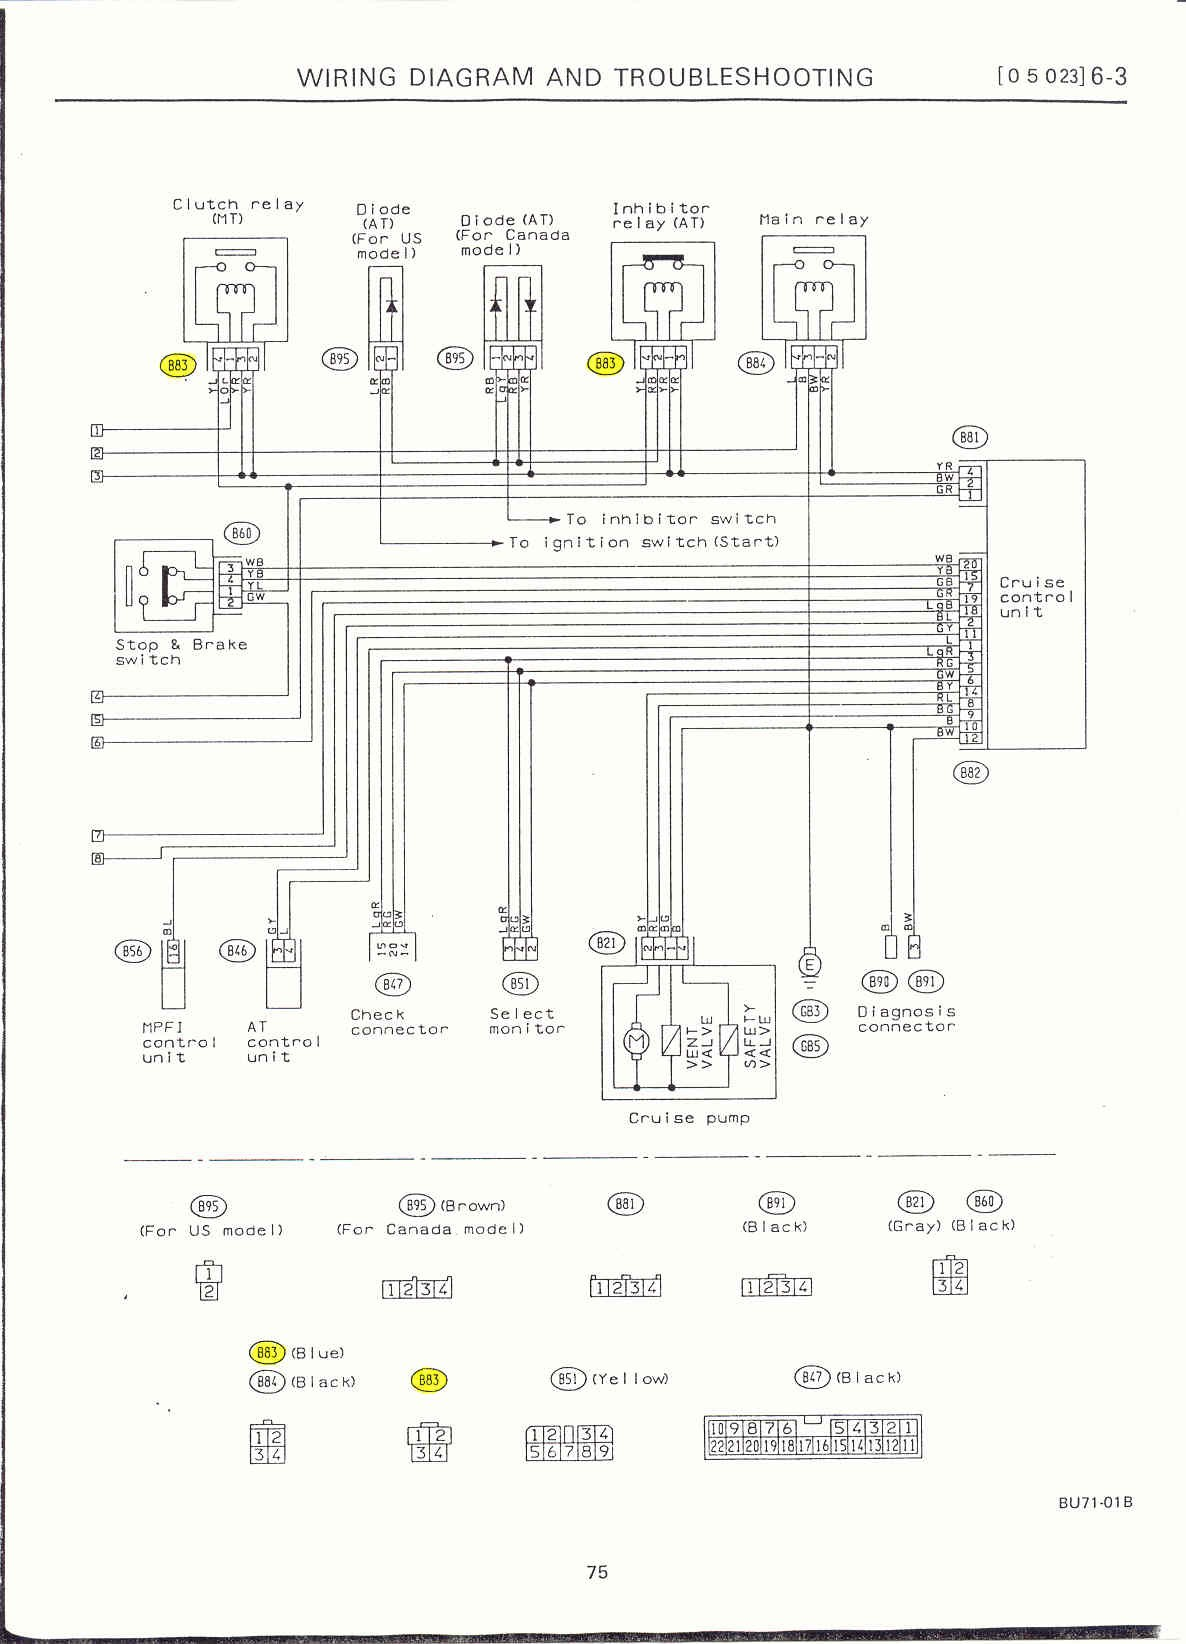 1995 subaru legacy engine diagram residential electrical symbols u2022 rh wiringdiagramnow today